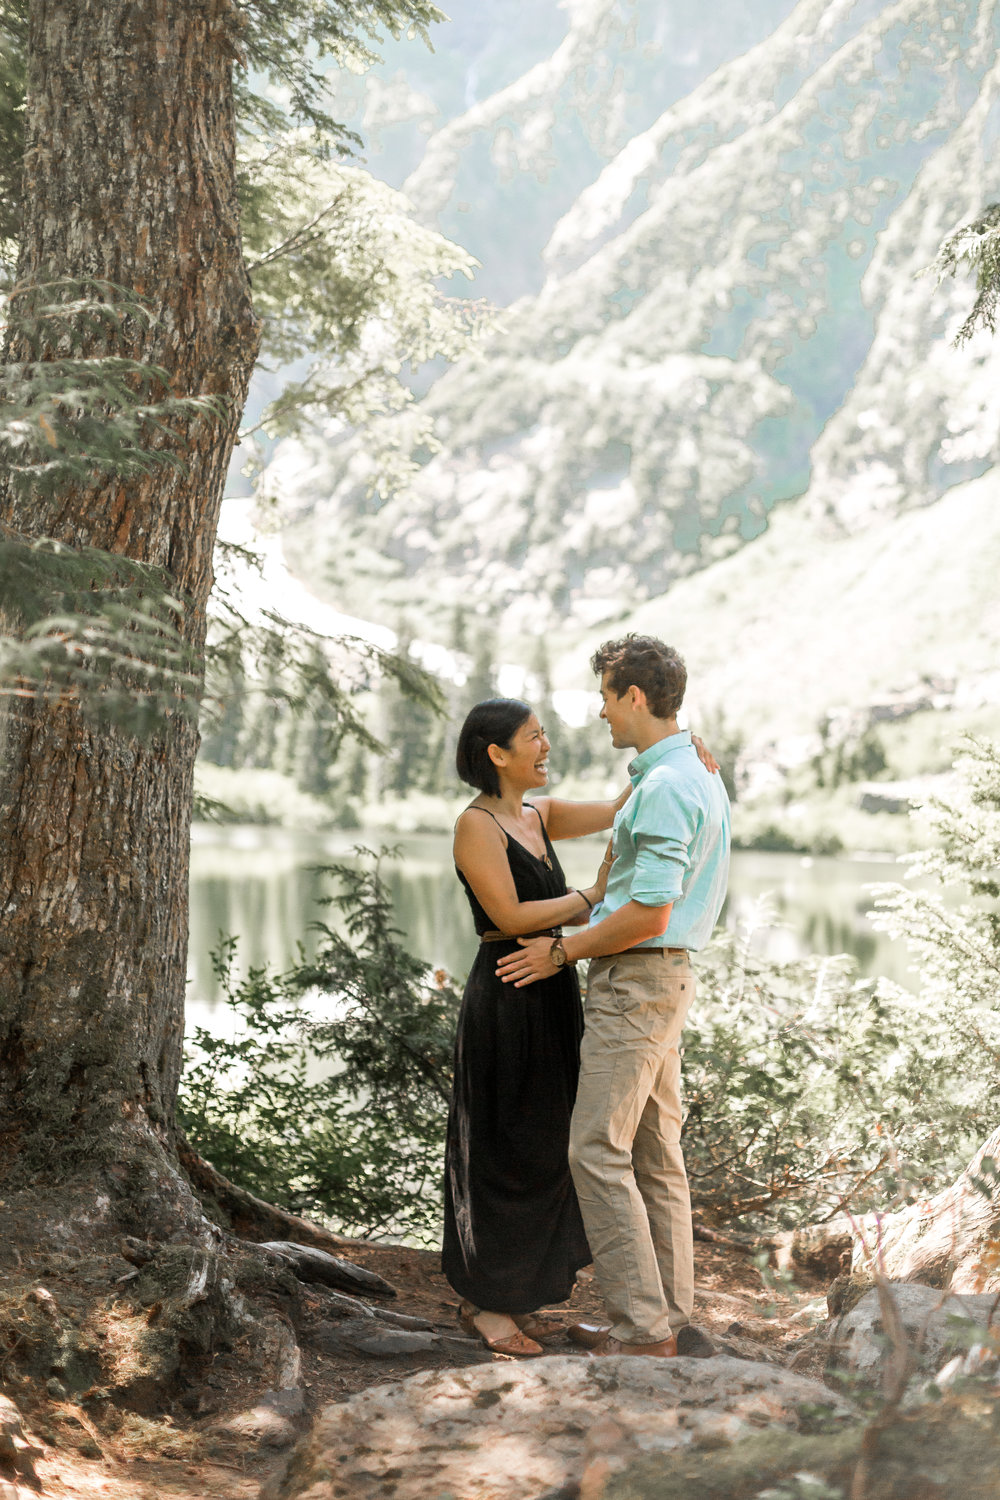 nicole-daacke-photography-hiking-engagement-session-in-snoqualmie-pass-washington-wedding-photographer-seattle-elopement-photography-adventurous-hiking-photos-heather-lake-washington-trails-4.jpg